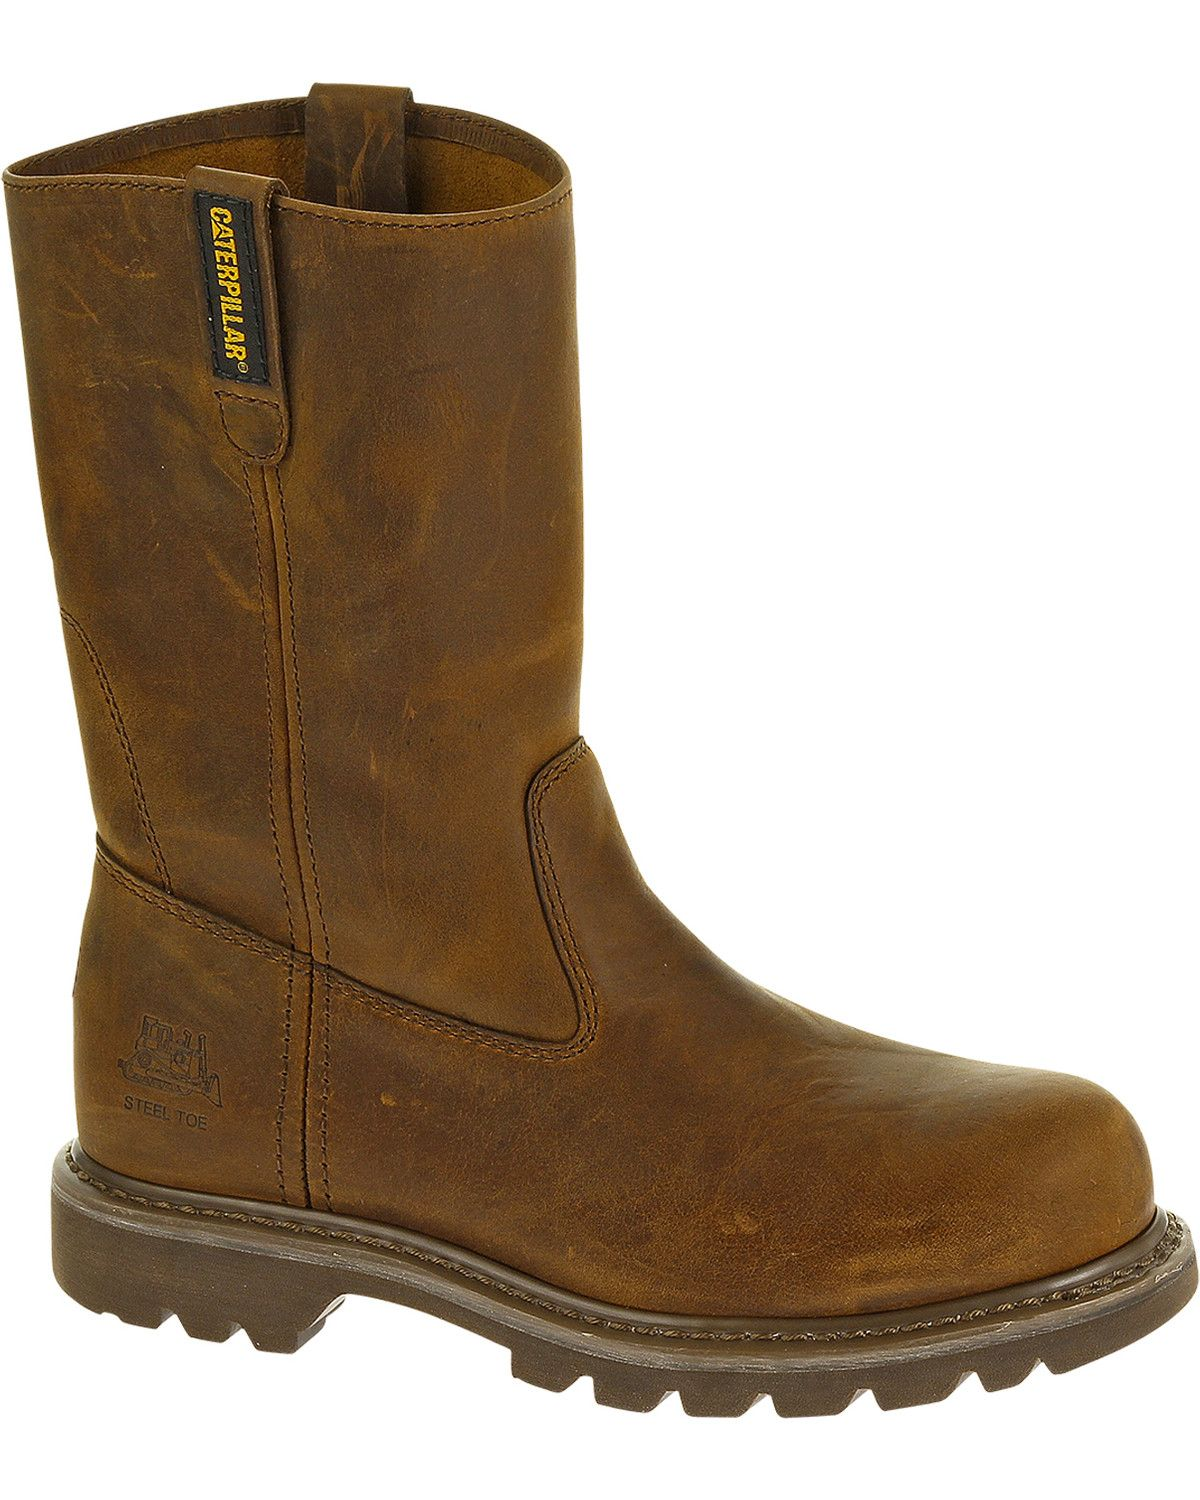 0ae1e25c218 CAT Women's Revolver Steel Toe Work Boots in 2019 | I Want to Buy ...